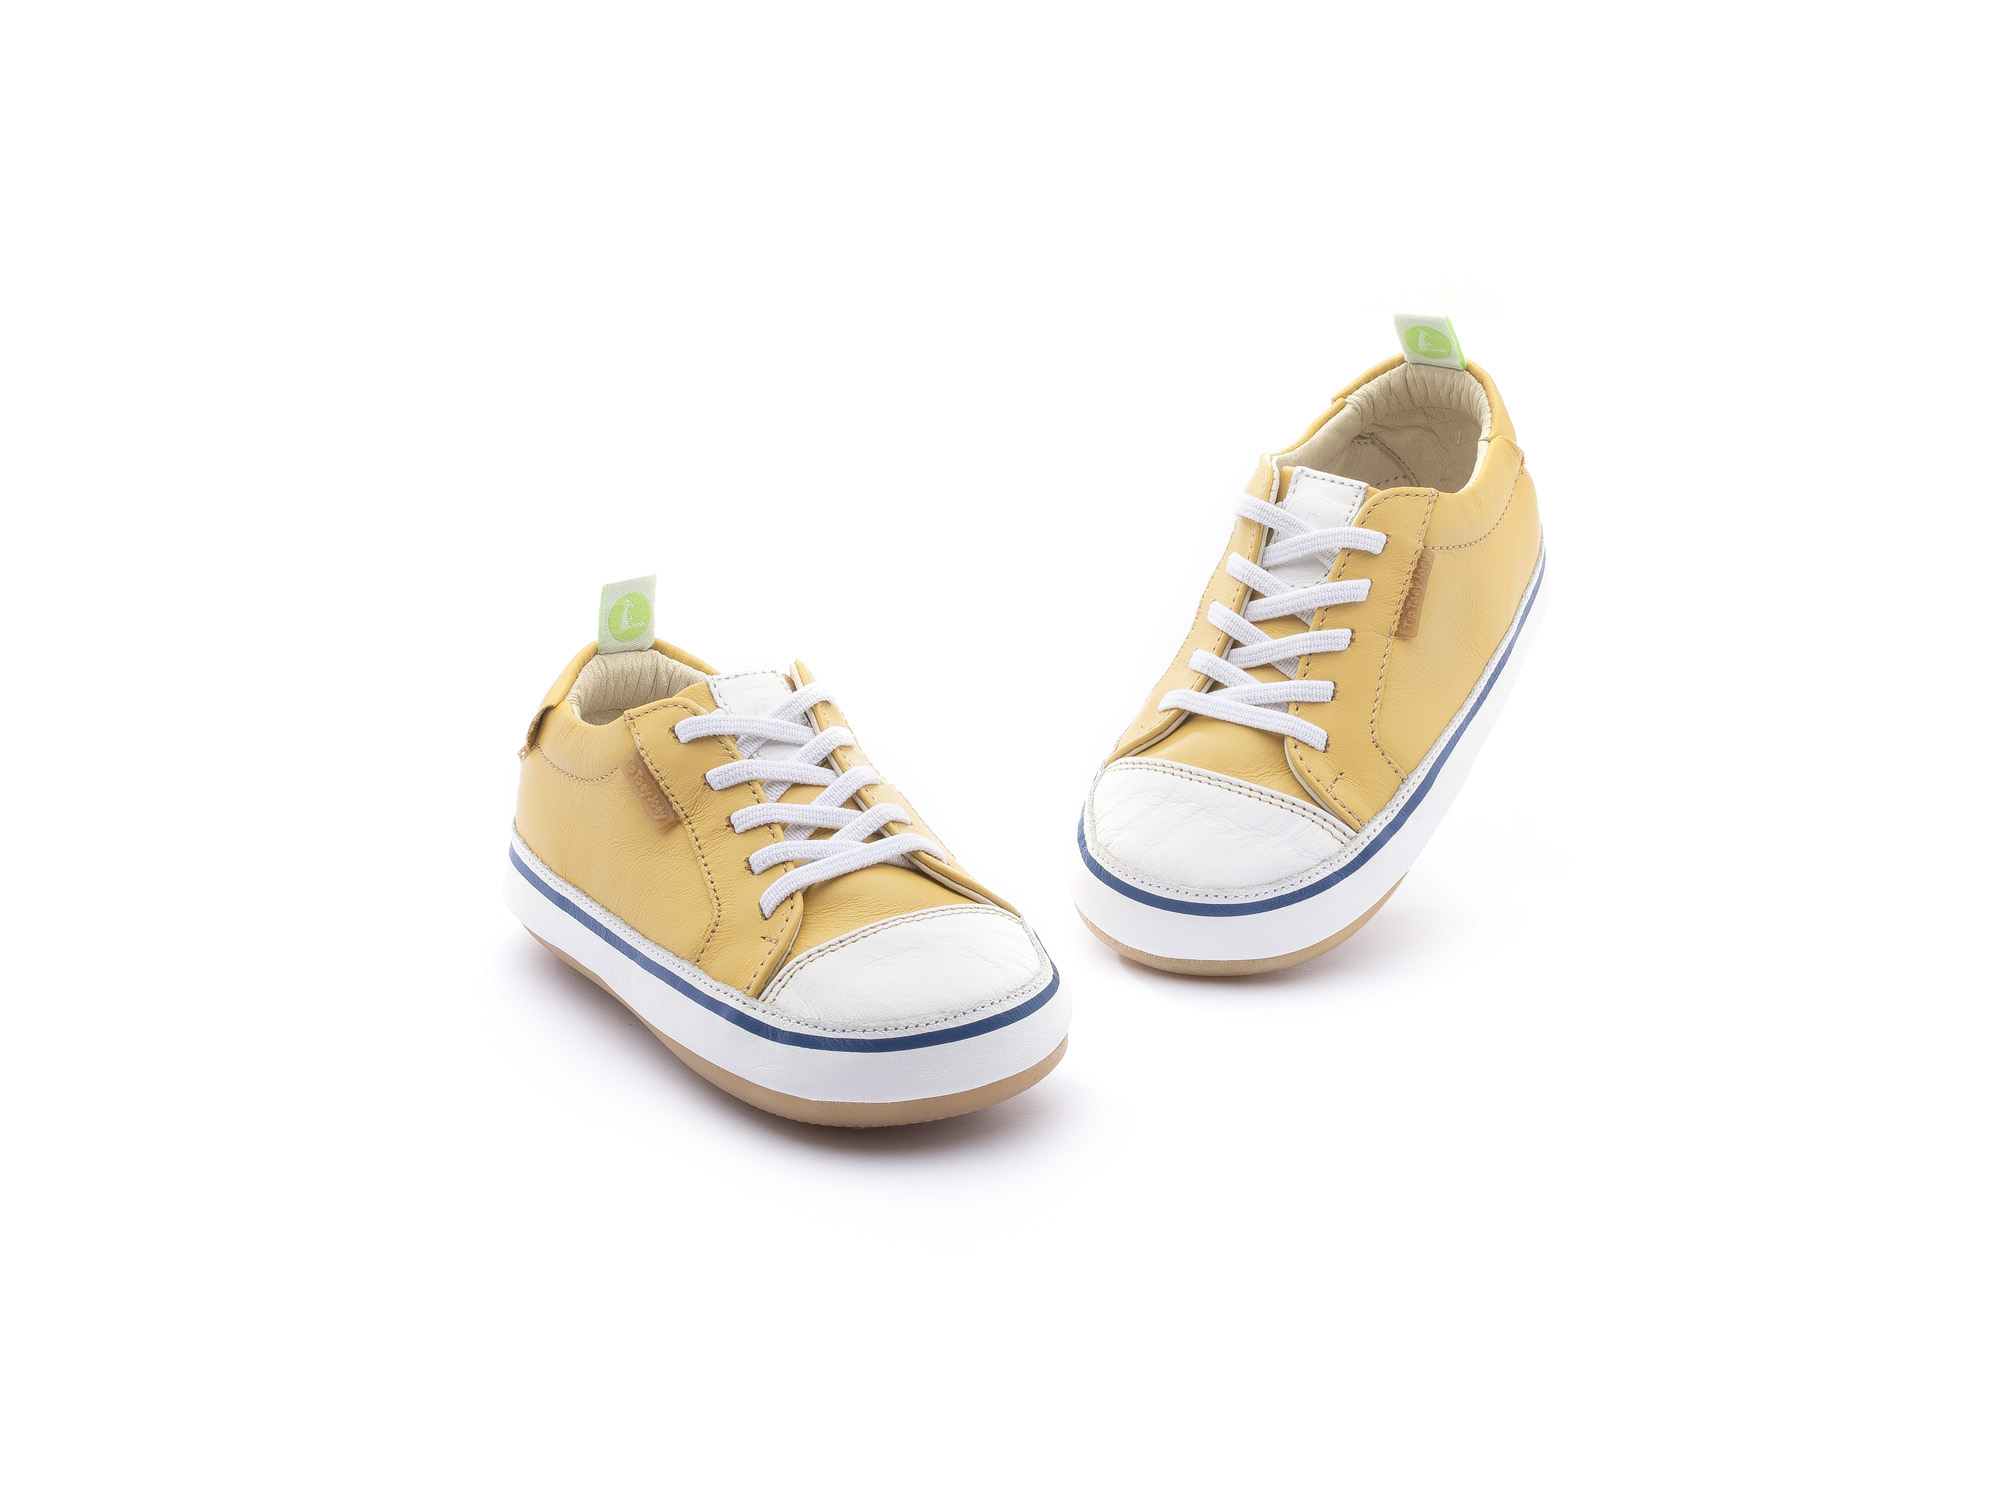 Sneaker Casual Funky Pequi/ White Baby 0 à 2 anos - 3